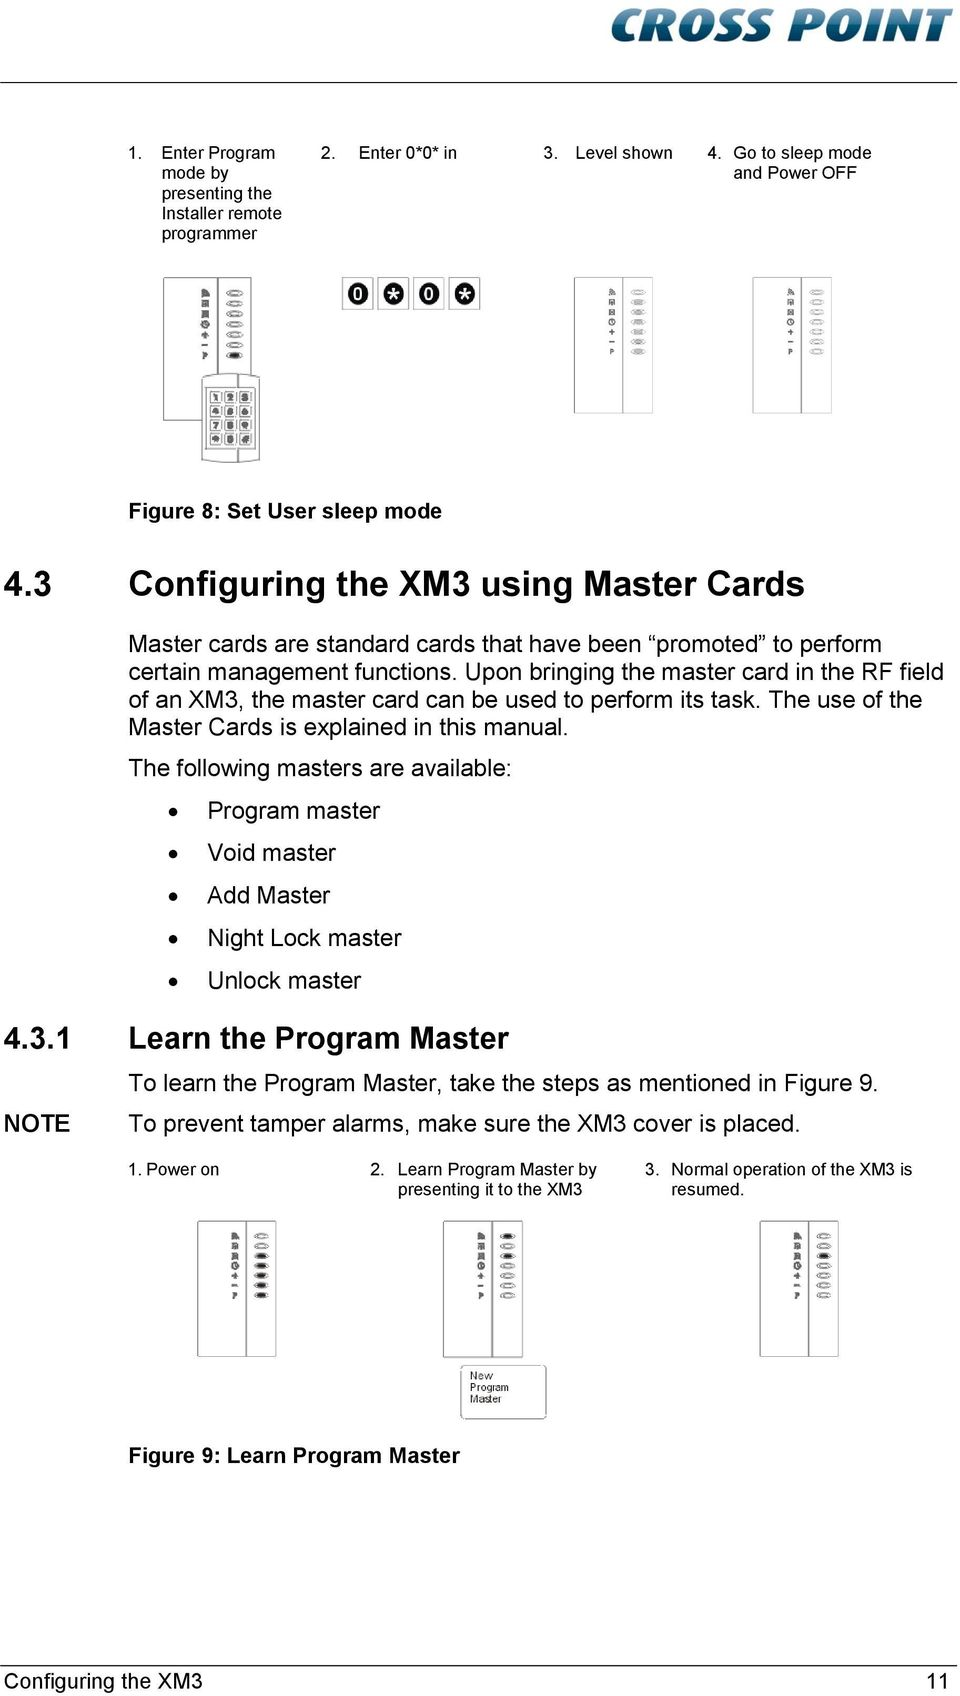 Upon bringing the master card in the RF field of an XM3, the master card can be used to perform its task. The use of the Master Cards is explained in this manual.